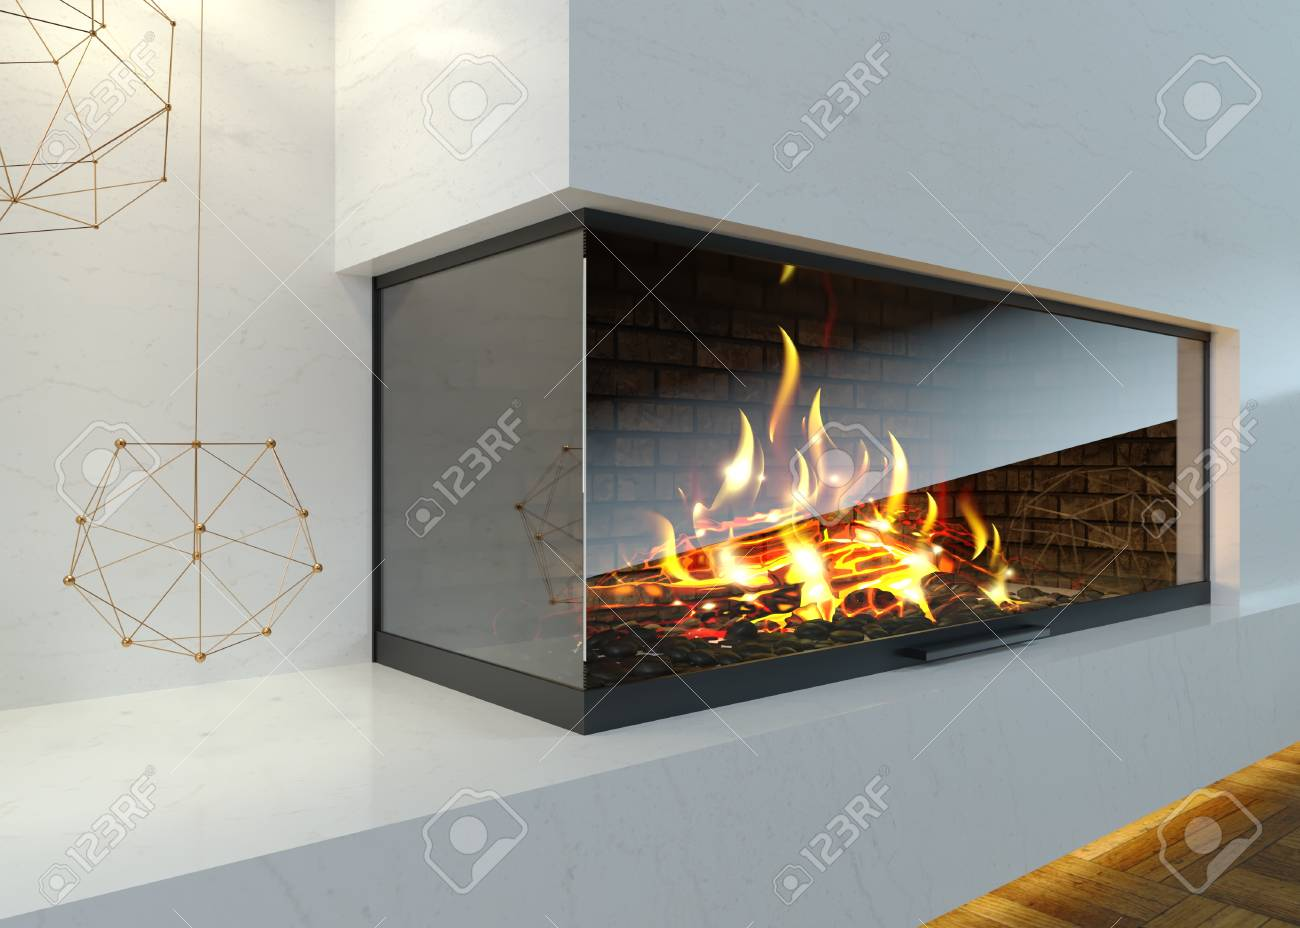 Modern Glass Corner Fireplace In The Interior Stock Photo Picture And Royalty Free Image Image 115177252